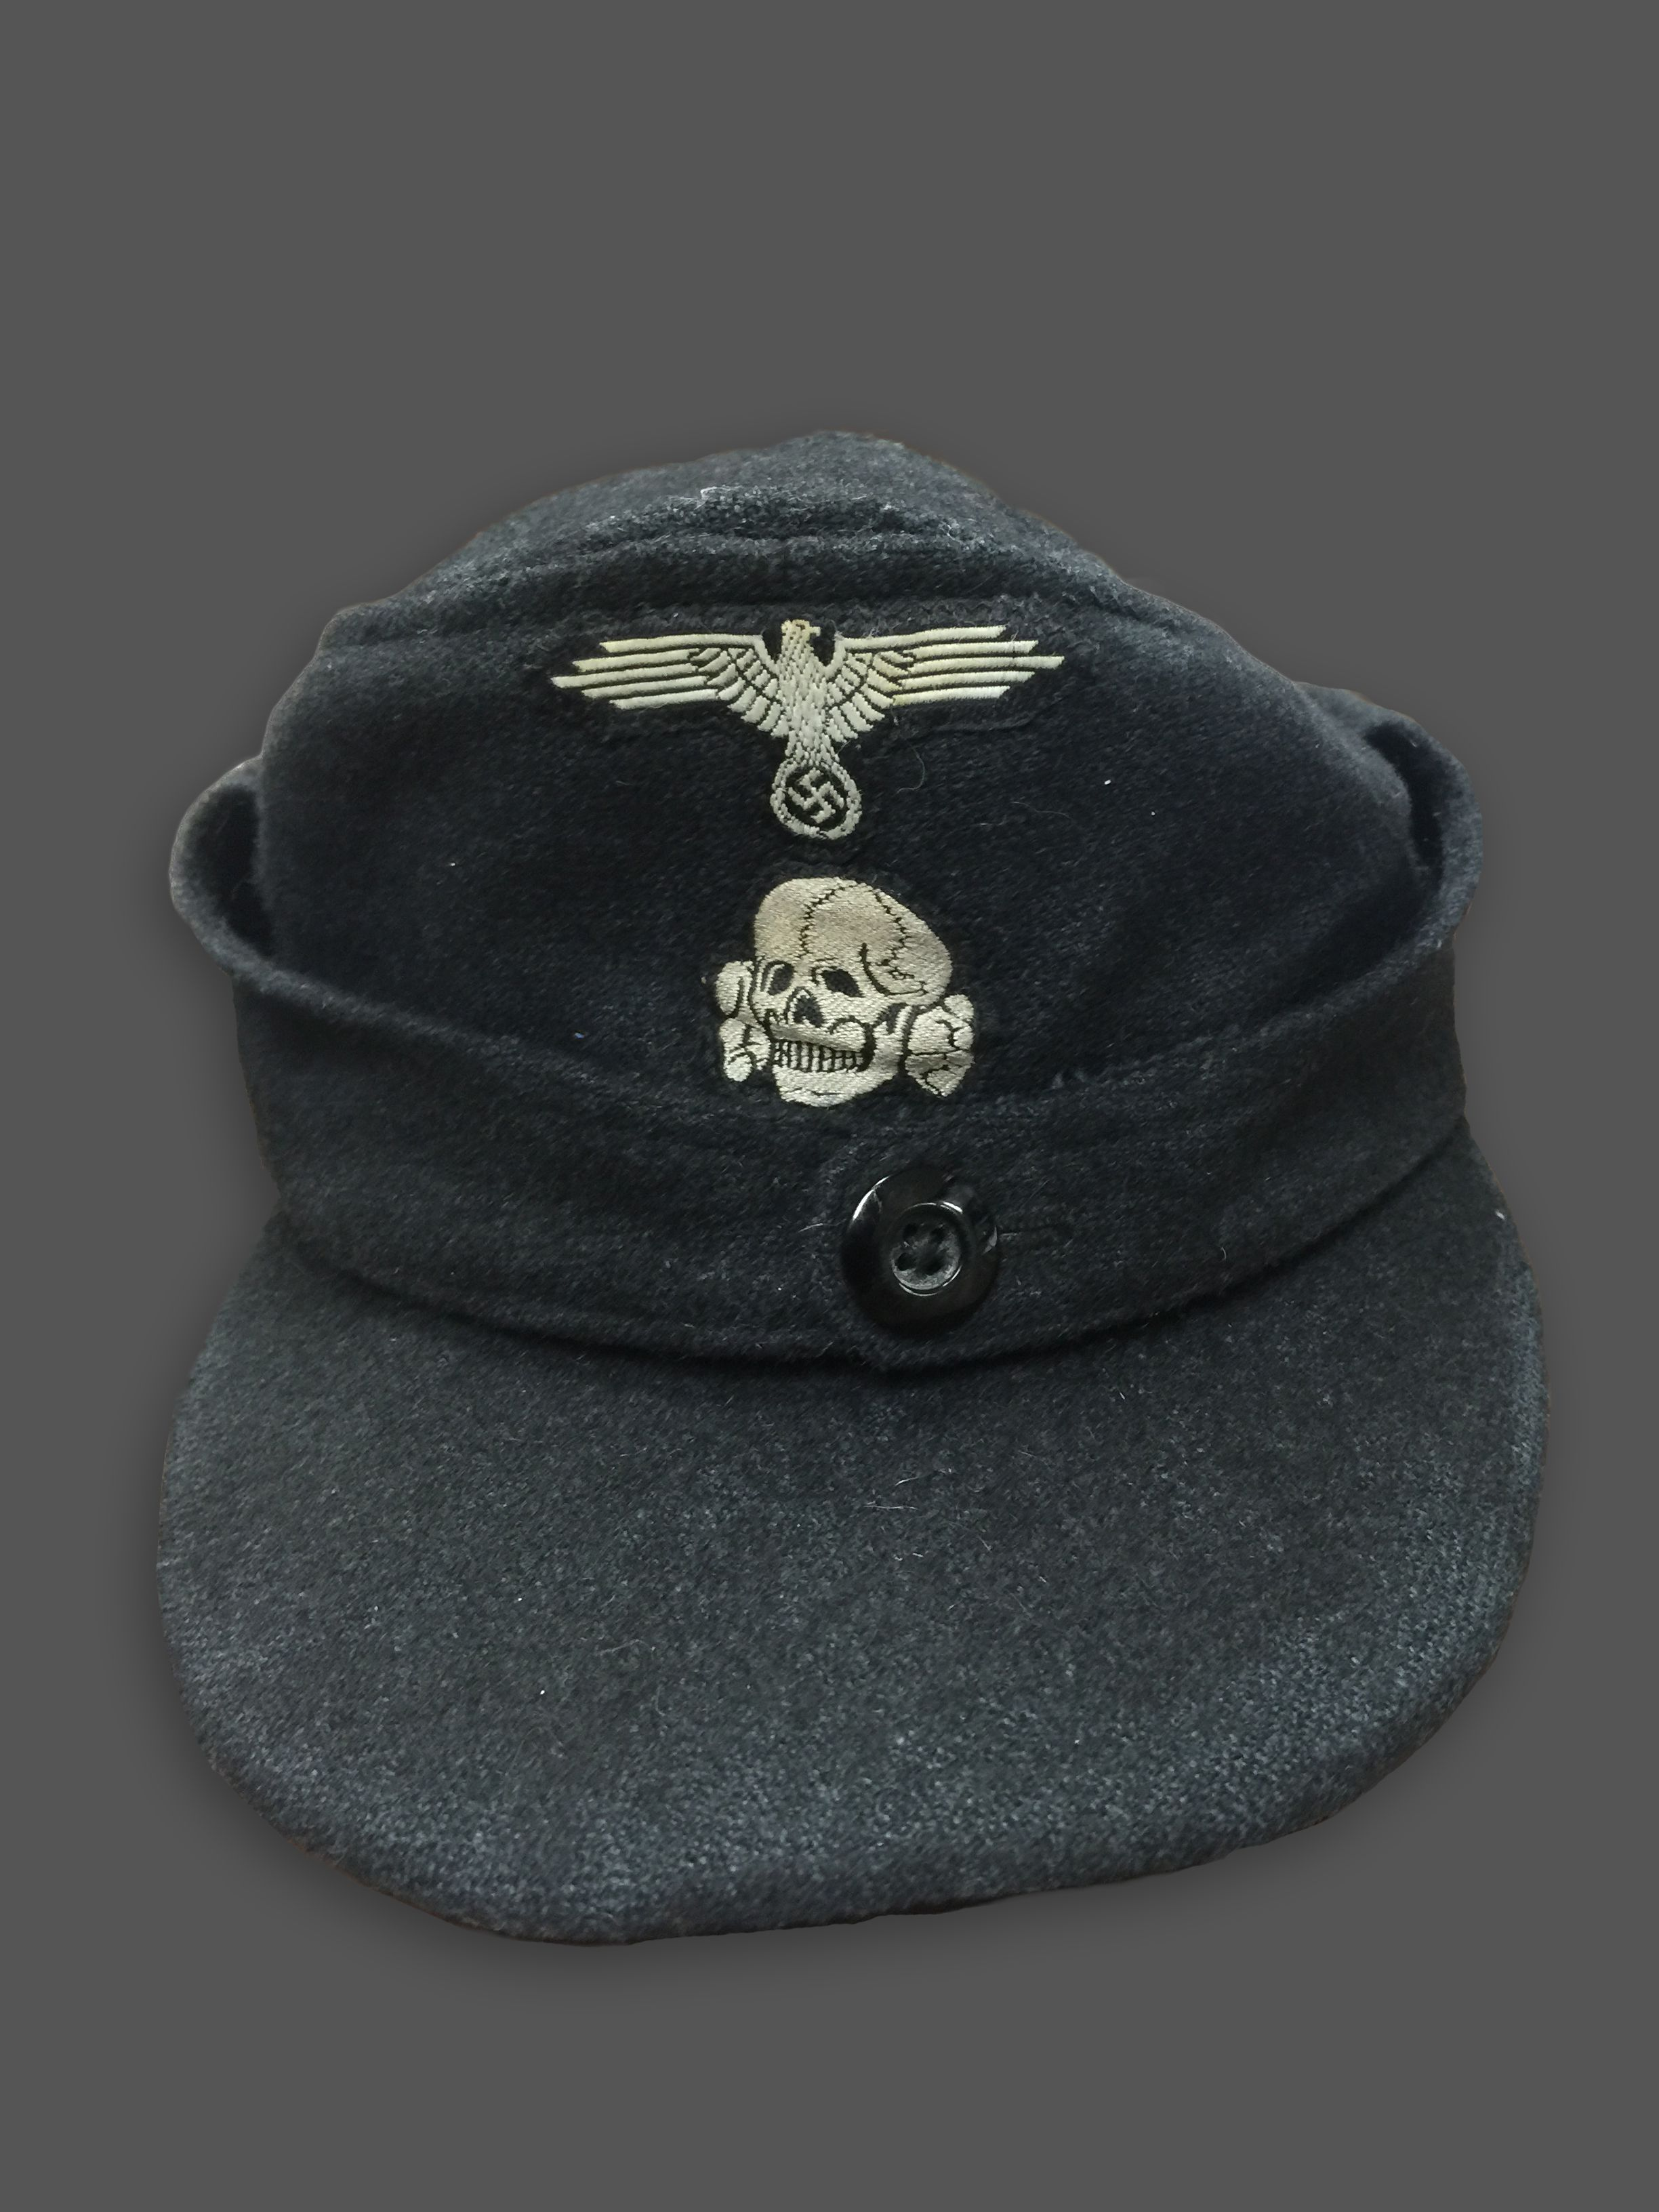 """The M43 Field Cap Or """"Einheitsmütze"""" Was A Cap Used By The"""